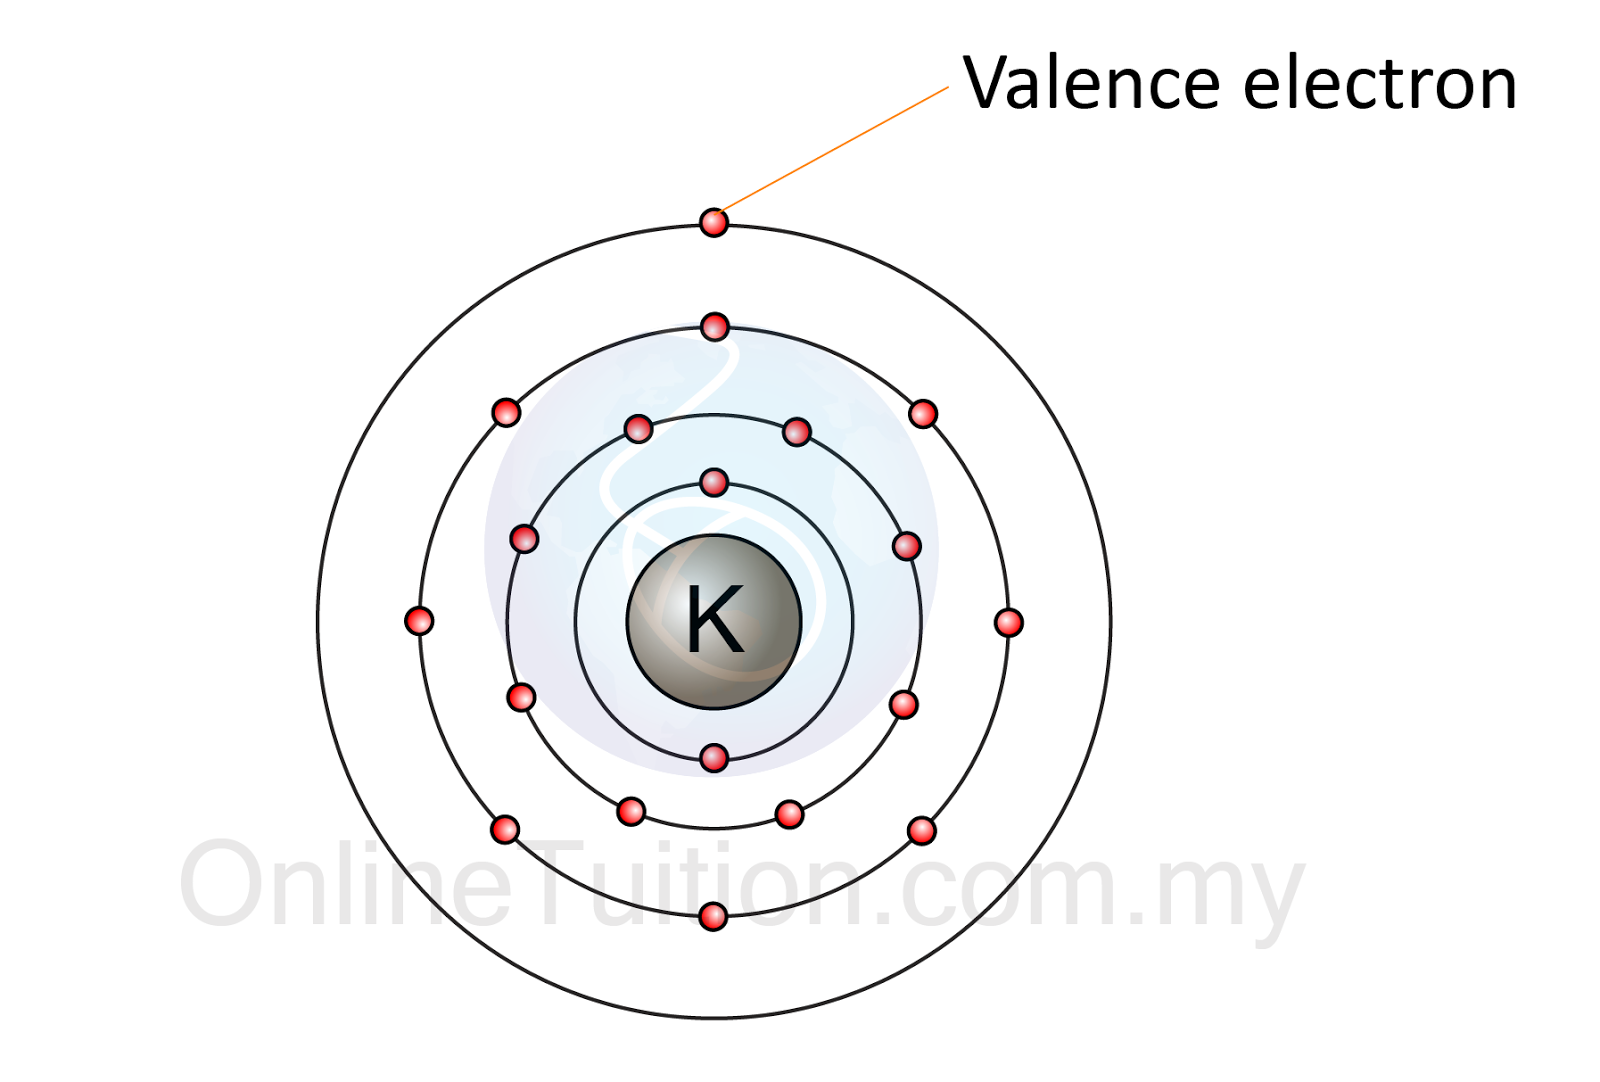 How do you count valence electrons of transition metals?